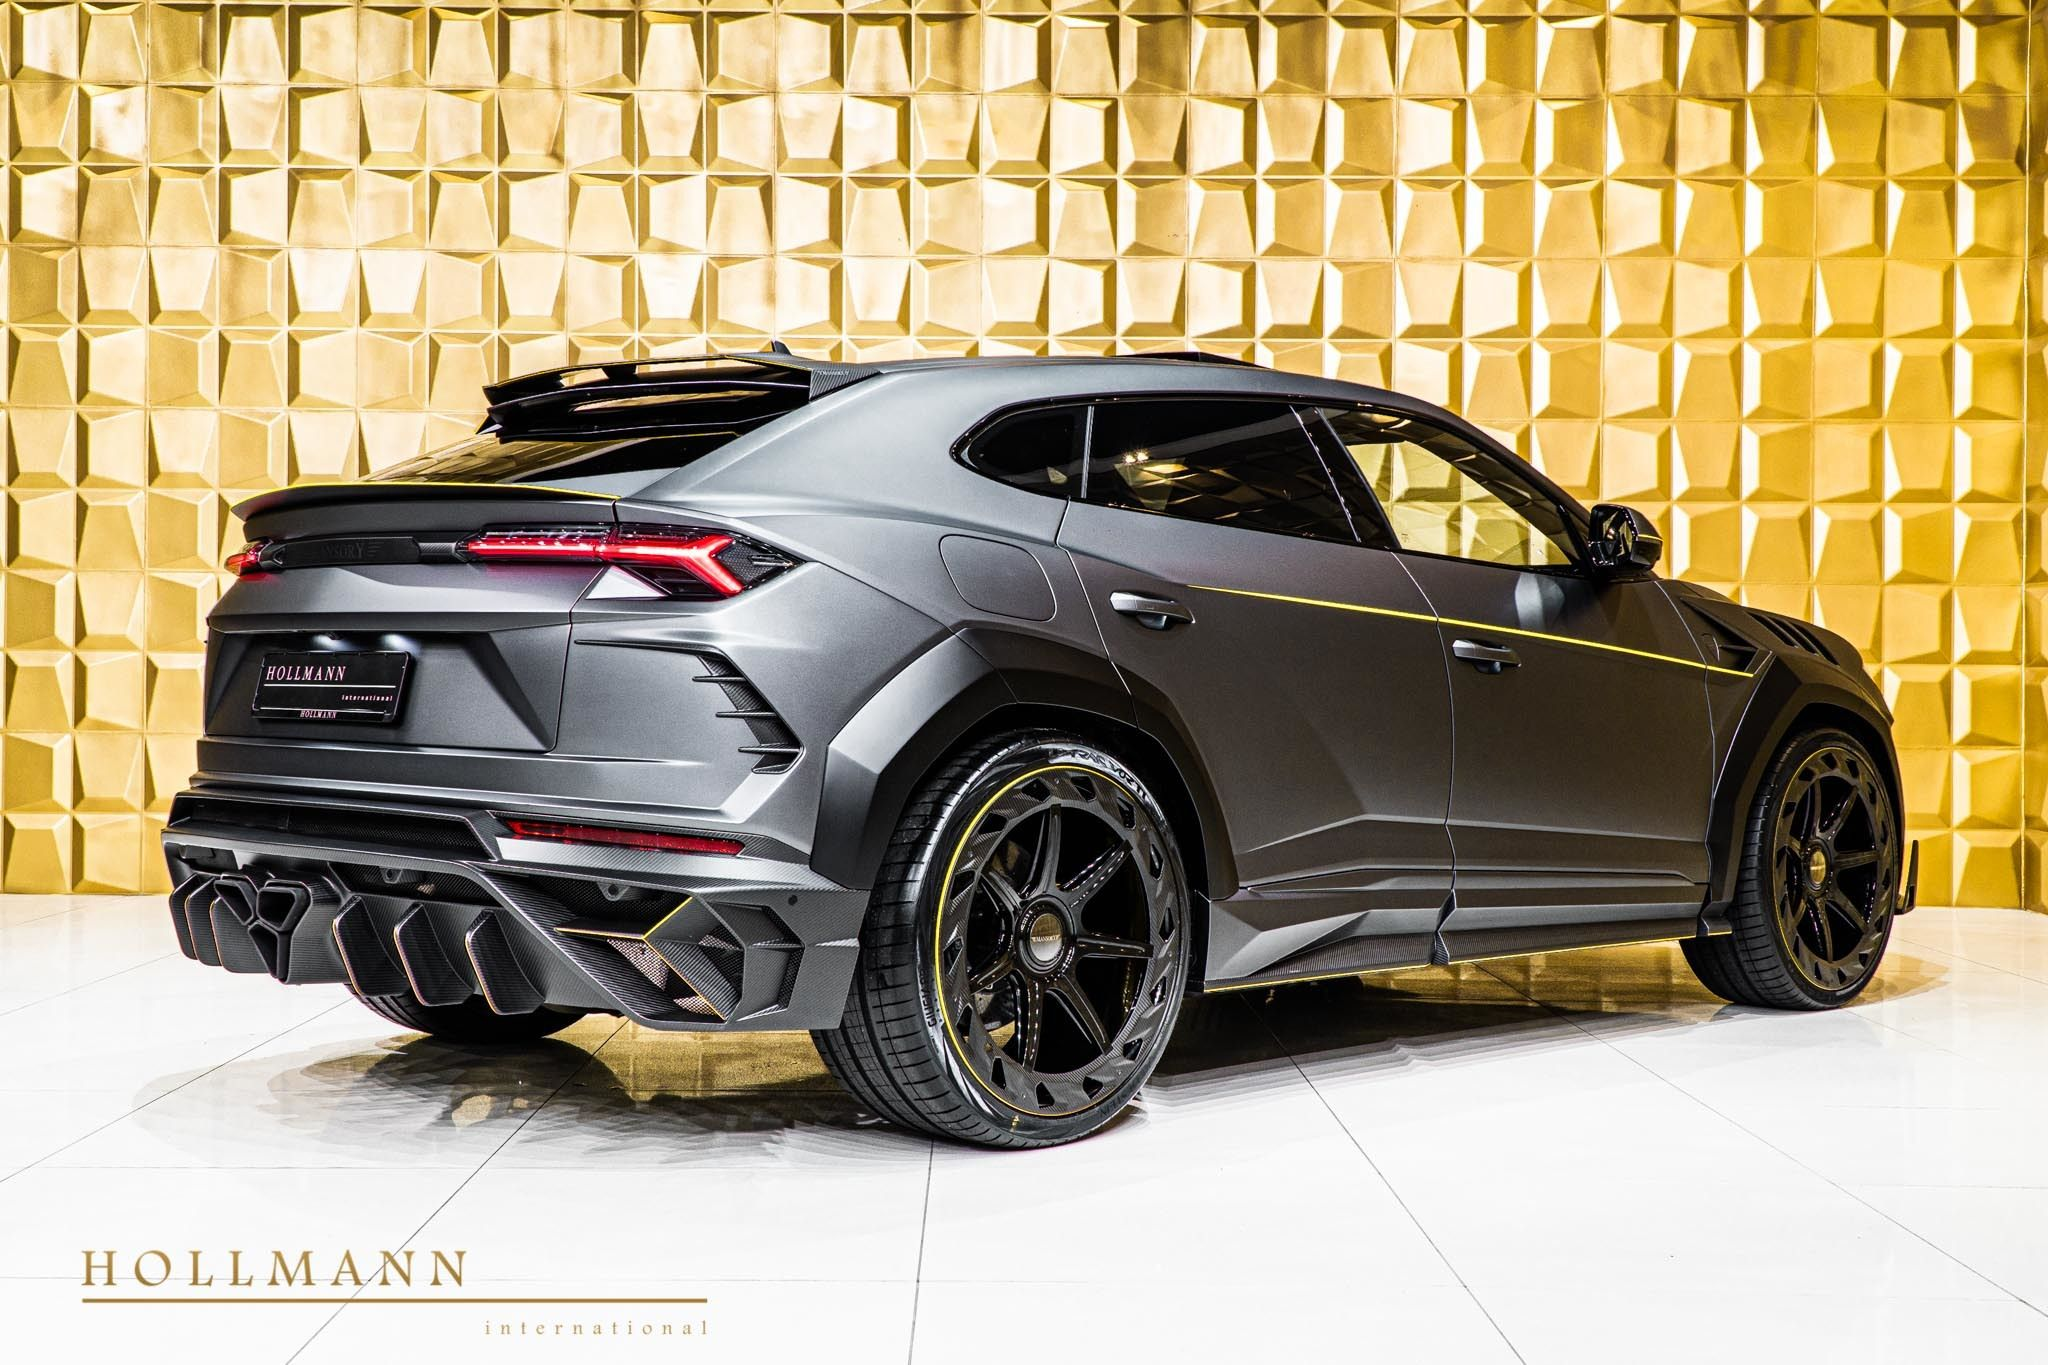 Lamborghini Urus By Mansory Hollmann International Germany For Sale On Luxurypulse In 2020 Luxury Suv Lamborghini Black Car